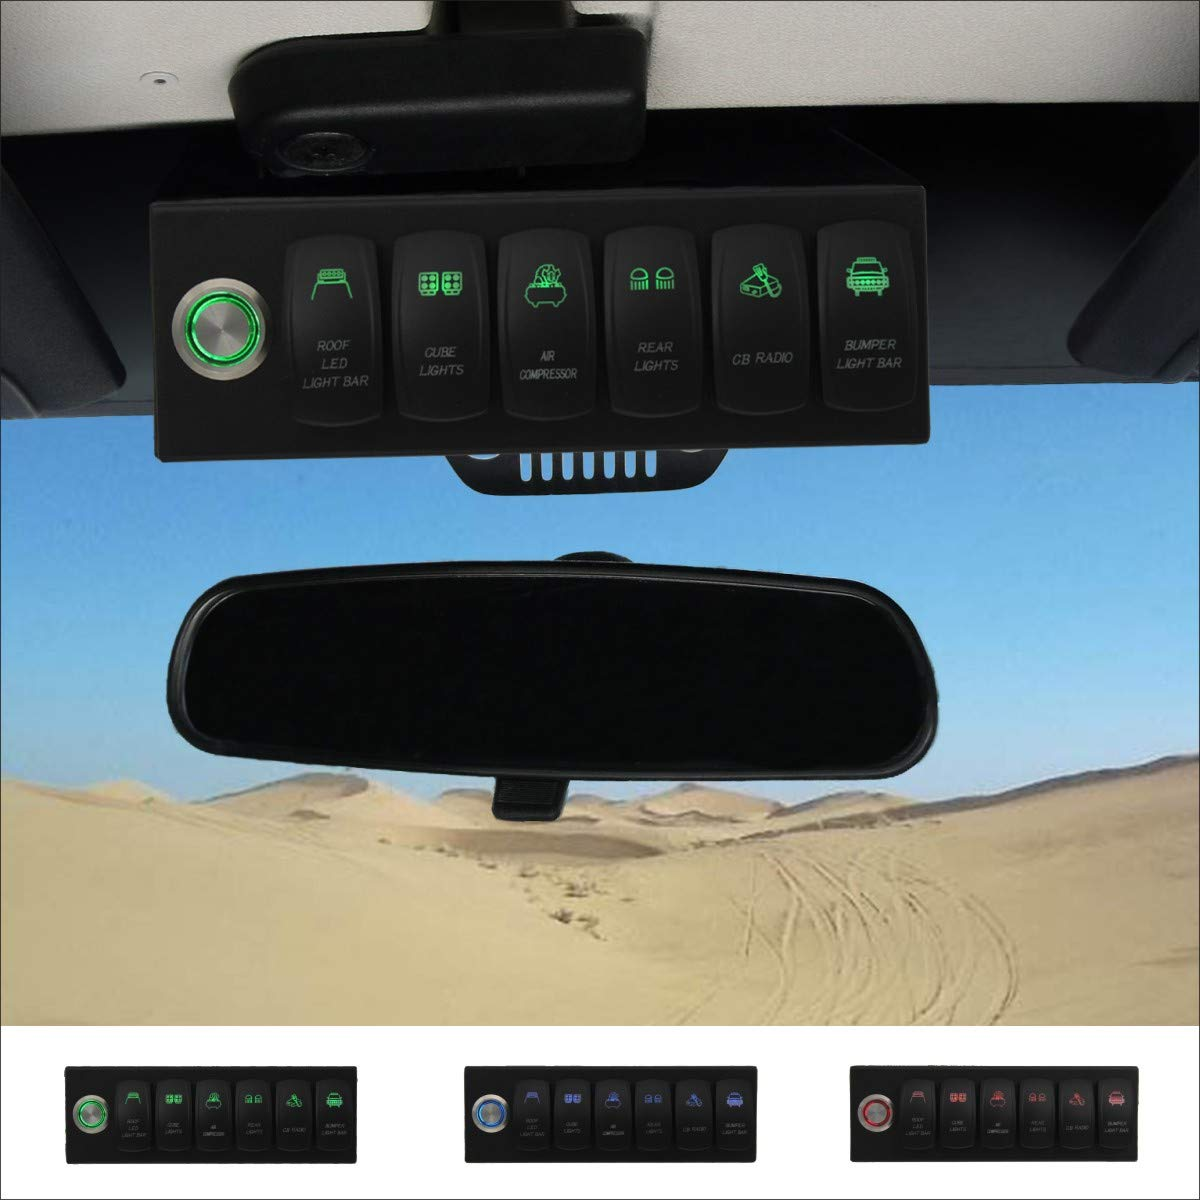 Apollointech Jeep Wrangler JK & JKU 2007-2018 Overhead 6-Switch Pod/Panel in Green Backlight with Control and Relay Box (Comes with 12 Laser Switch Covers) by ApolloIntech